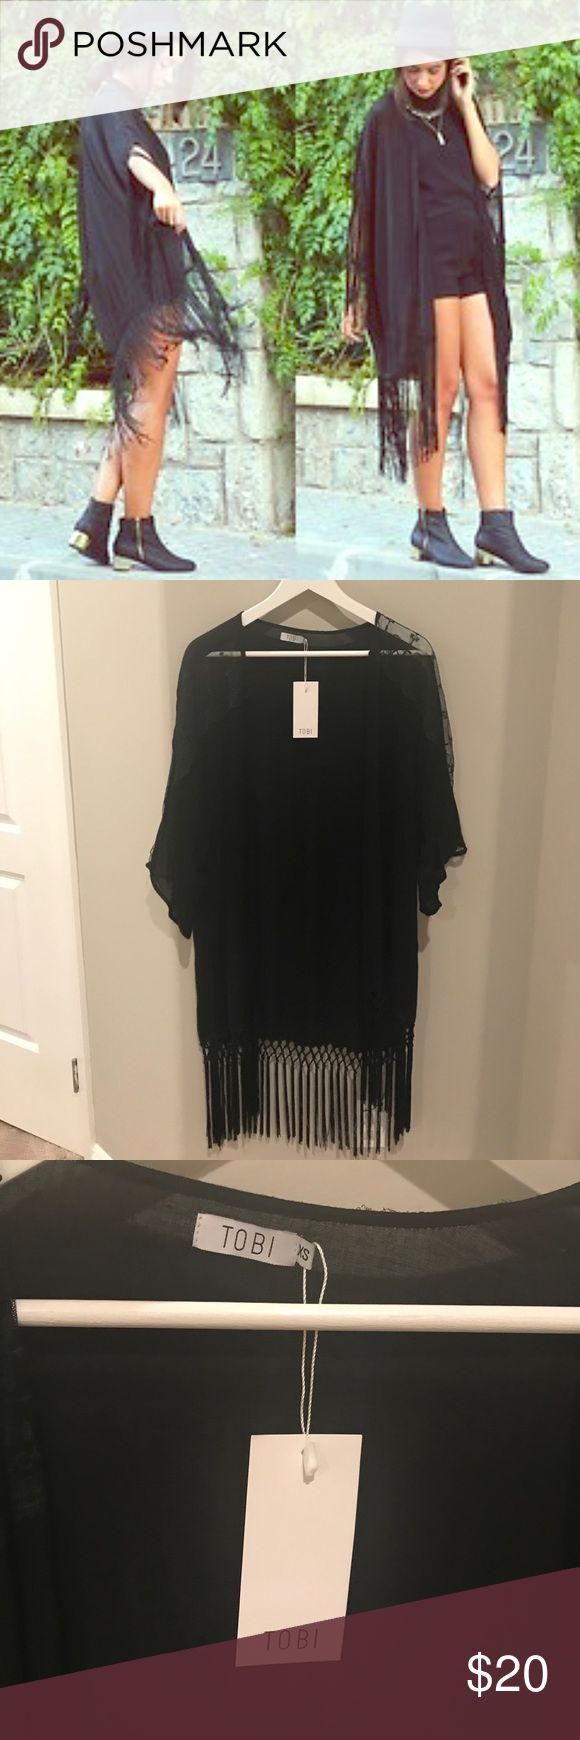 Black lace & fringe kimono Tobi brand. Size xs but can fit a small. Lace shoulders, fringe bottom. Top back right has 2 small holes, not noticeable. I received it from tobi like this but didnt realize till much later. Perfect for festival, as a cover up, or a night out. Very lightweight Tobi Jackets & Coats Capes